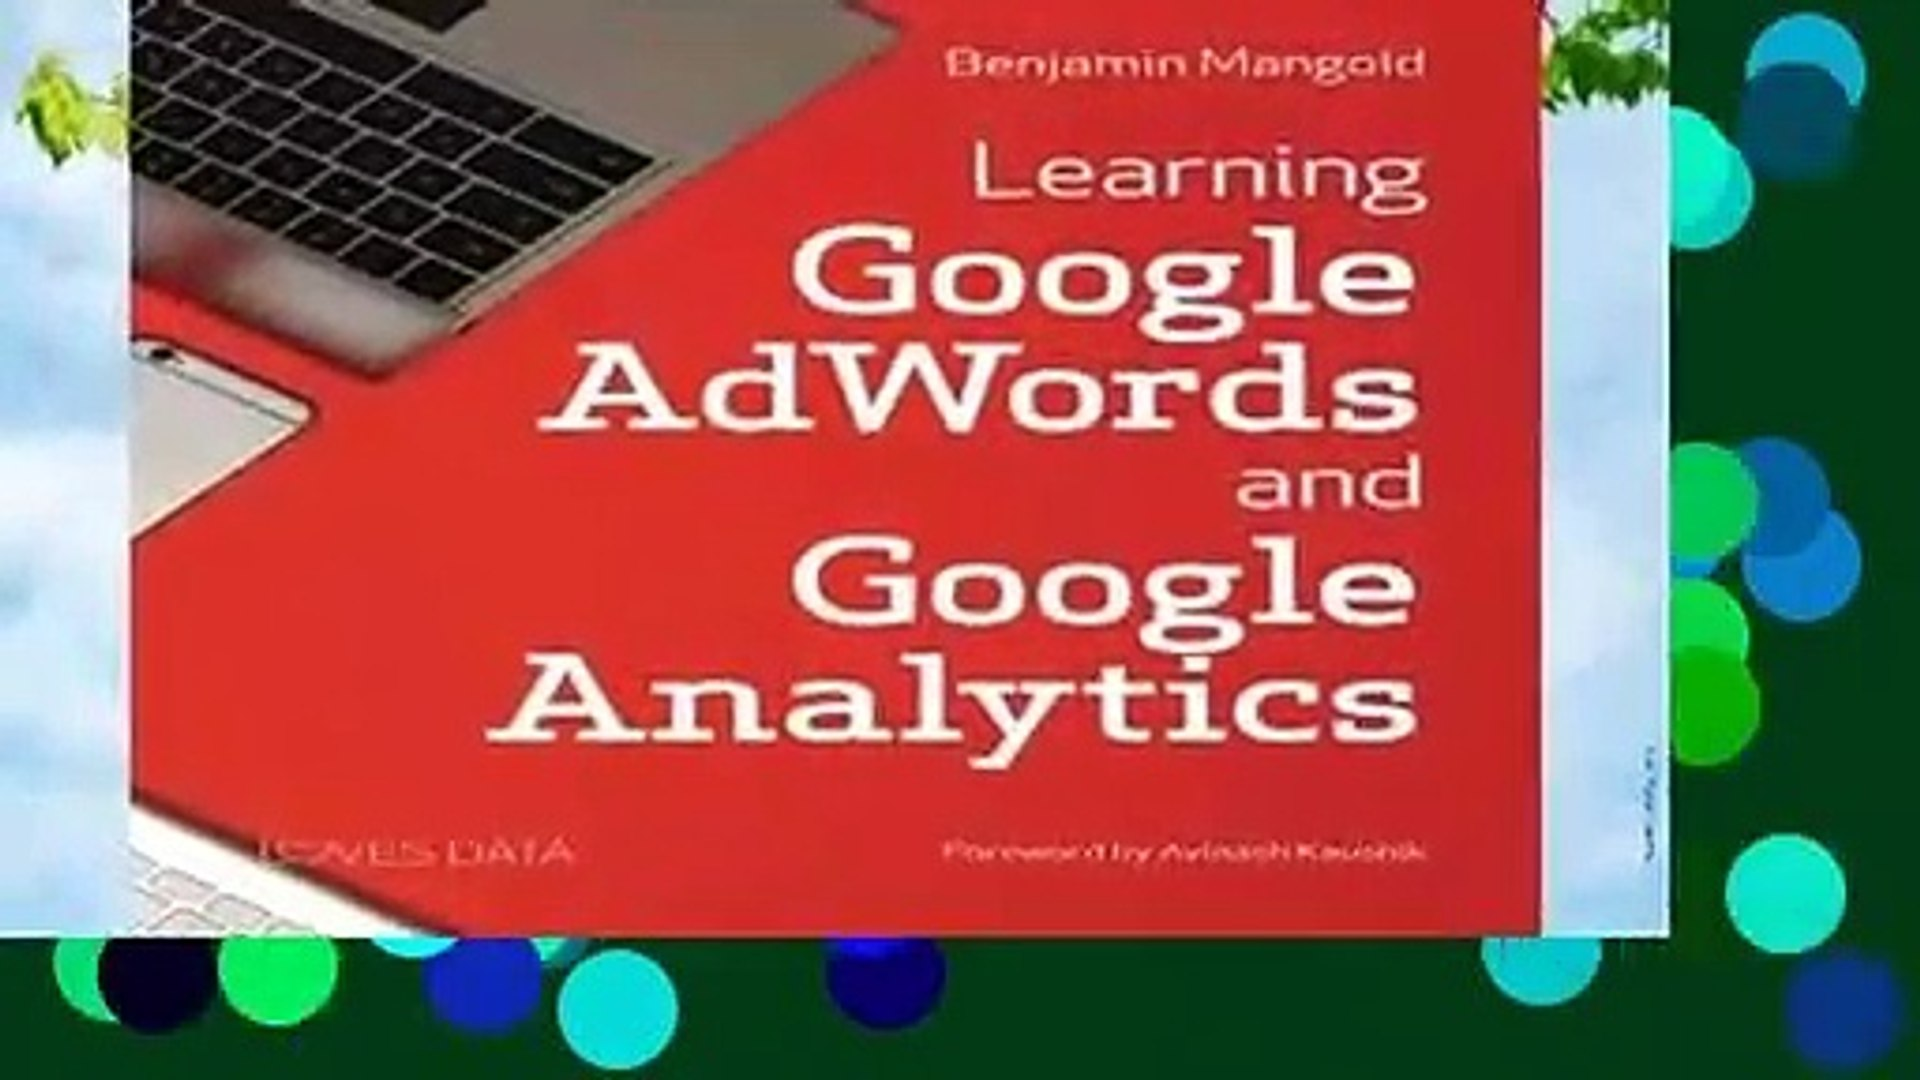 [GIFT IDEAS] Learning Google AdWords and Google Analytics by Benjamin Mangold